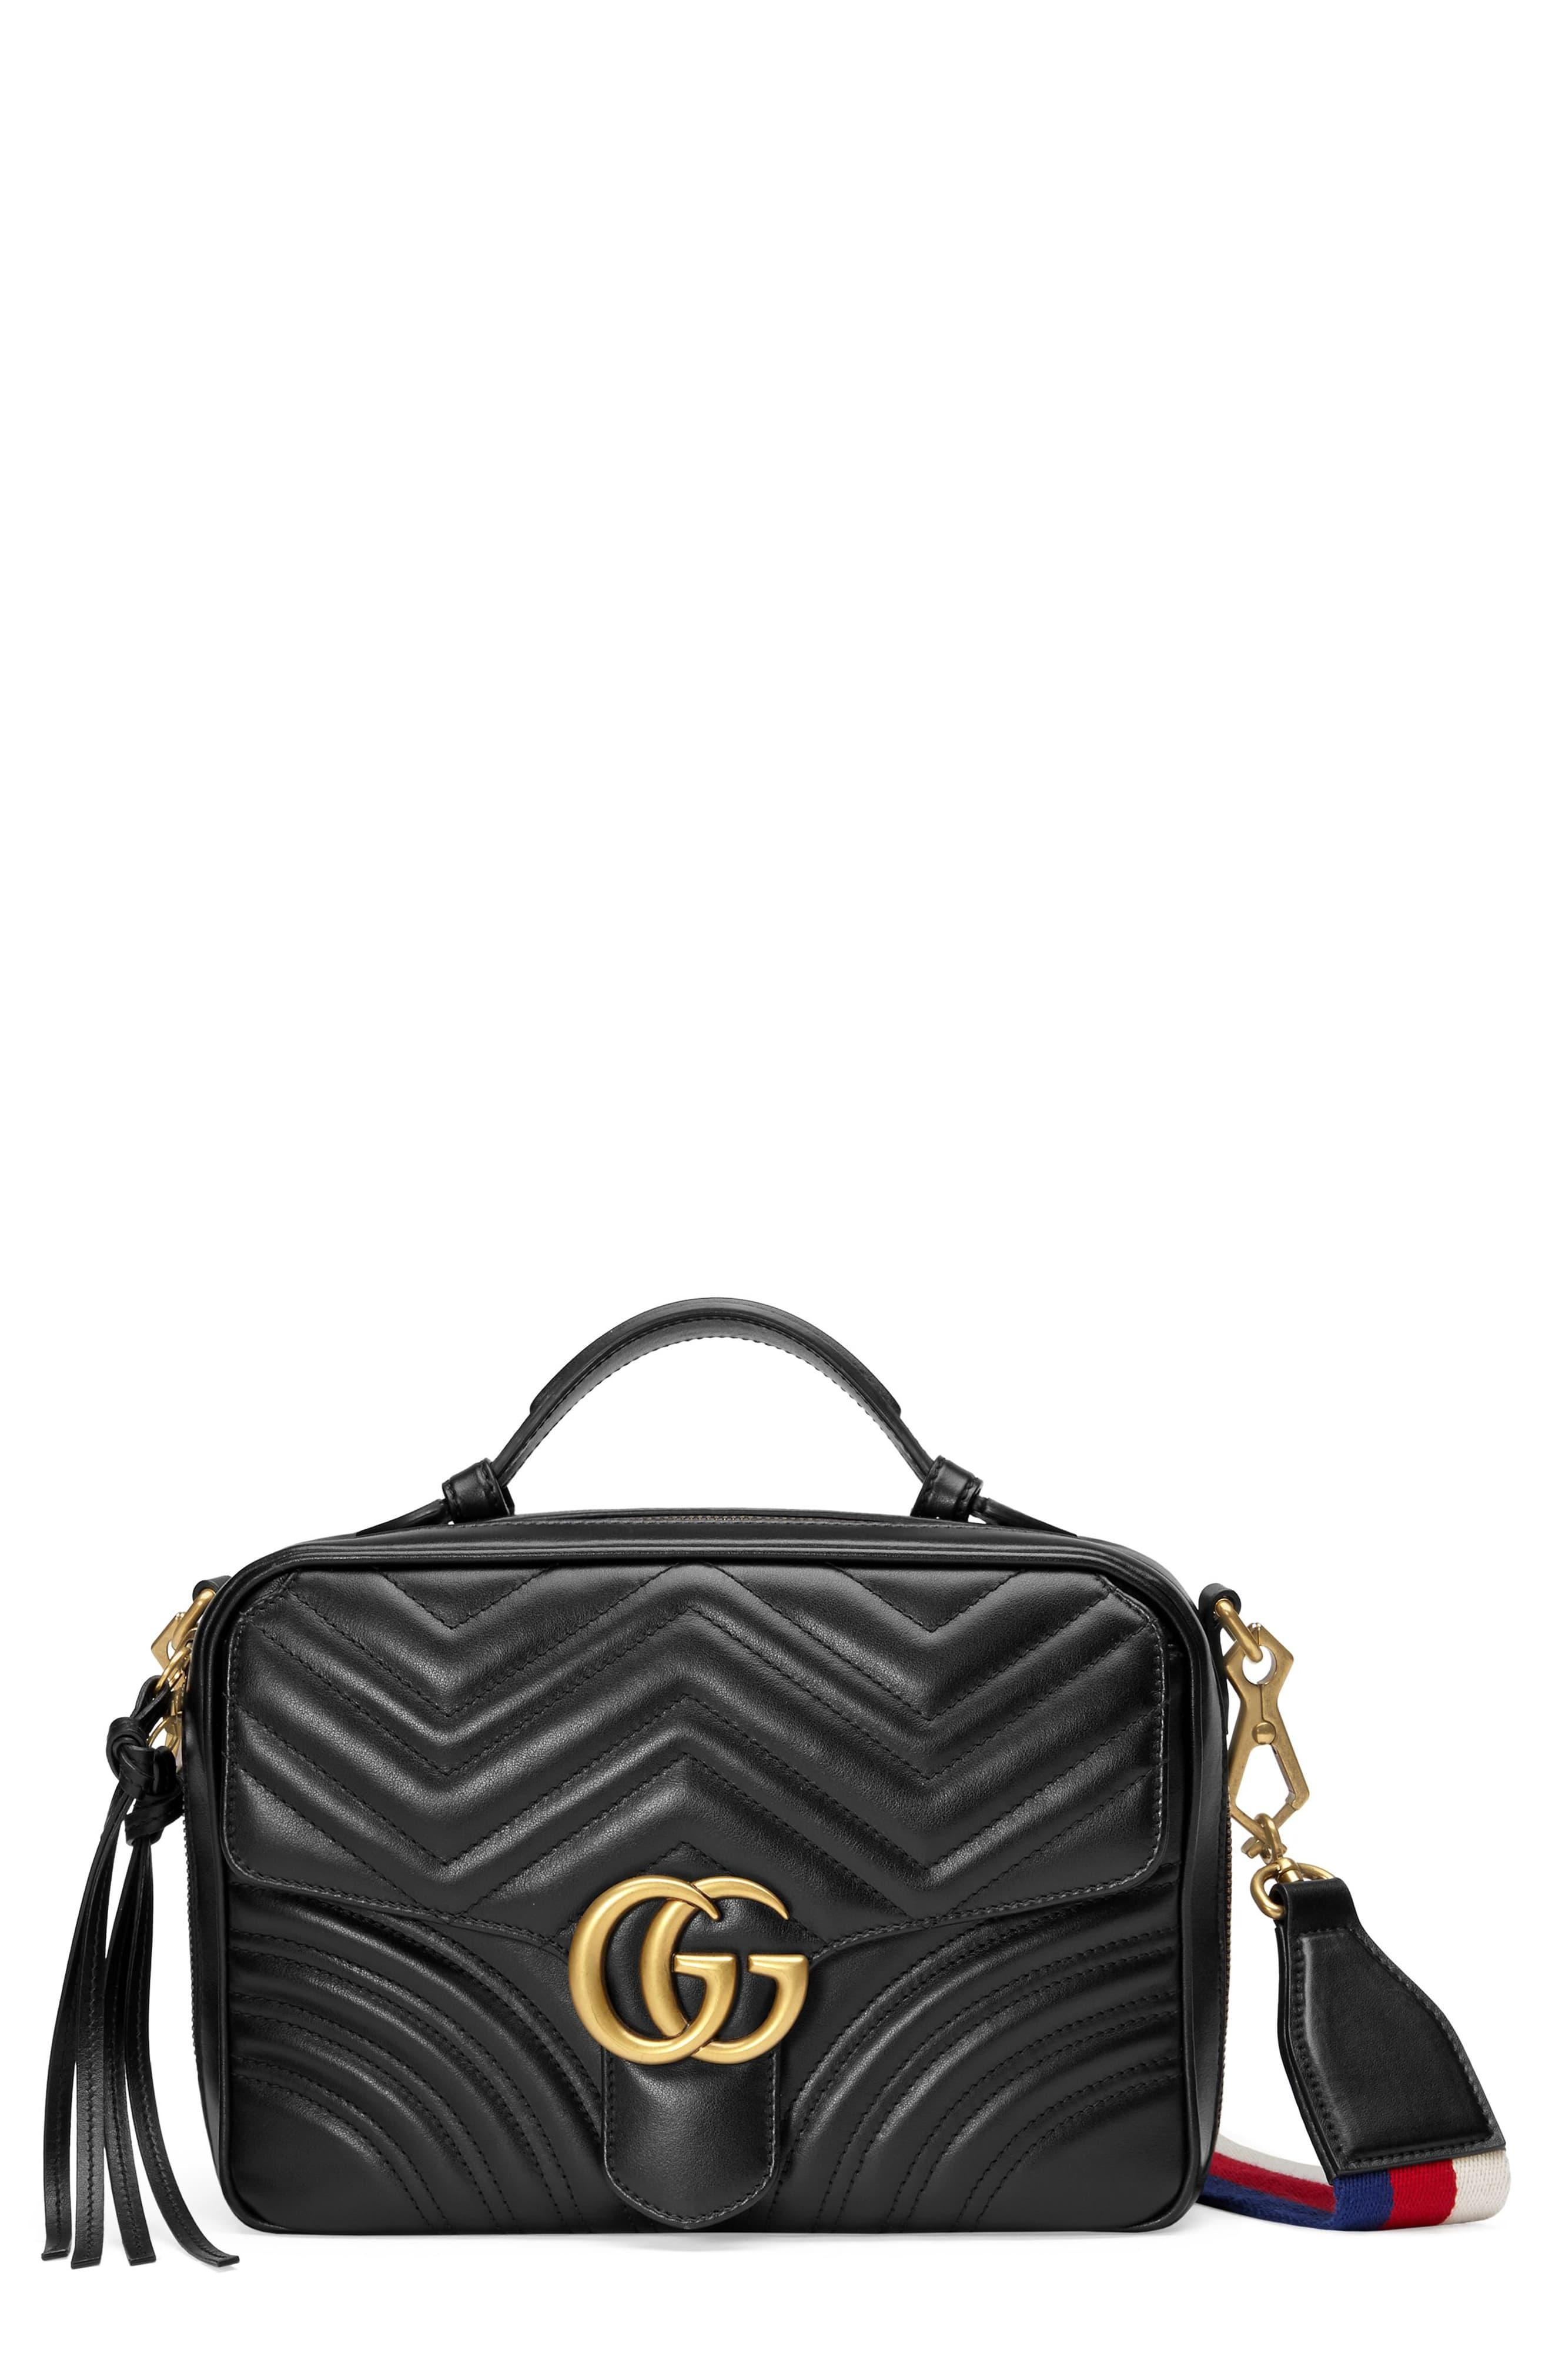 7e0ca52756f8cd Gucci. Women's Black Small Gg Marmont 2.0 Matelassé Leather Camera Bag ...